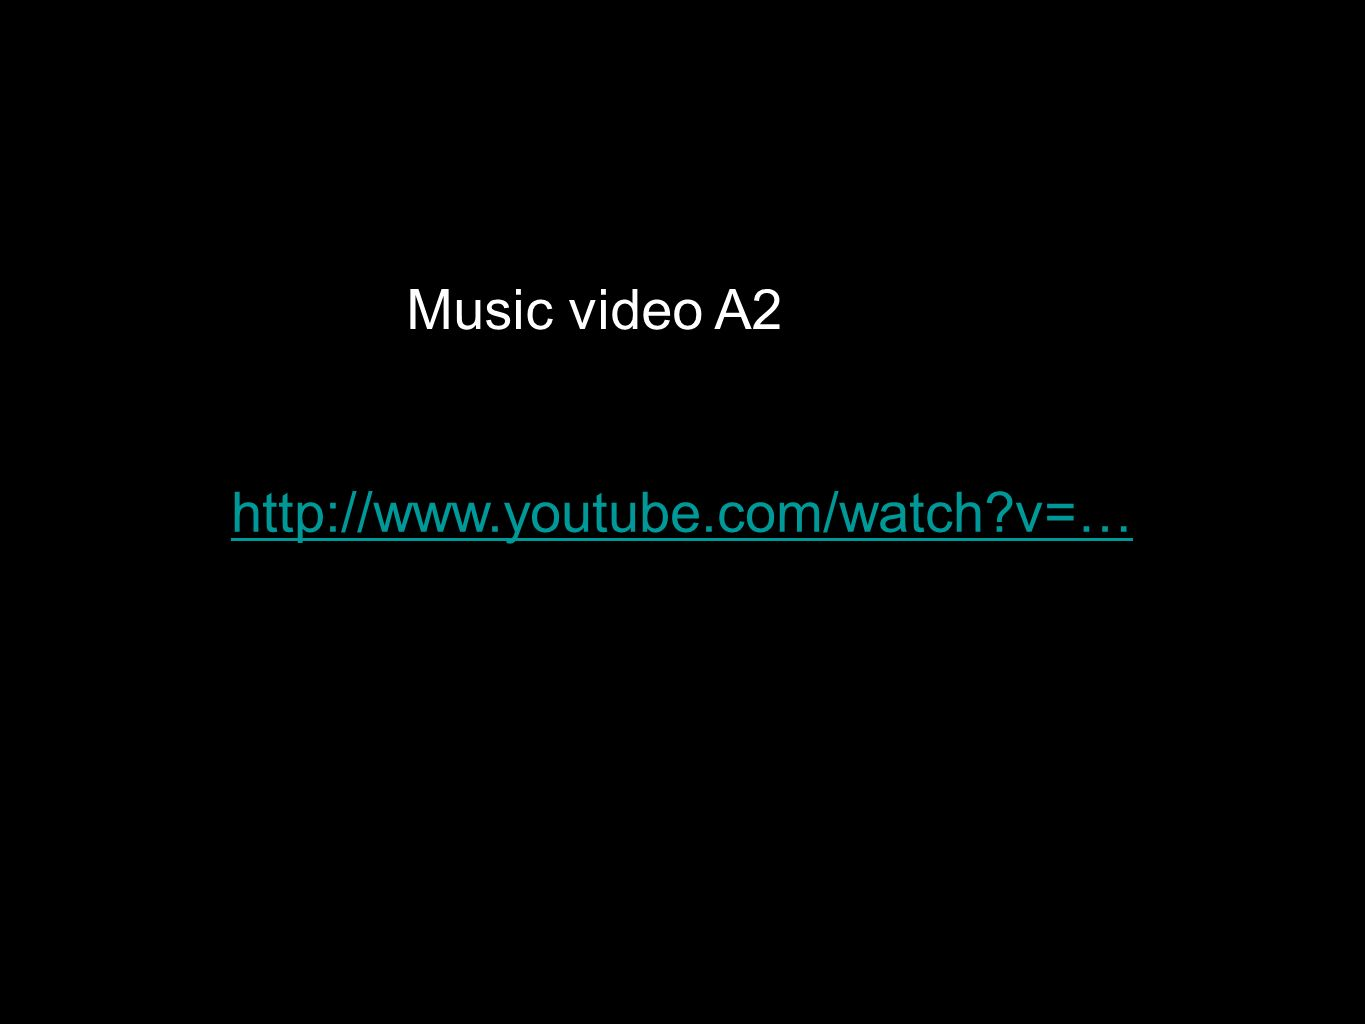 http://www.youtube.com/watch?v=… Music video A2